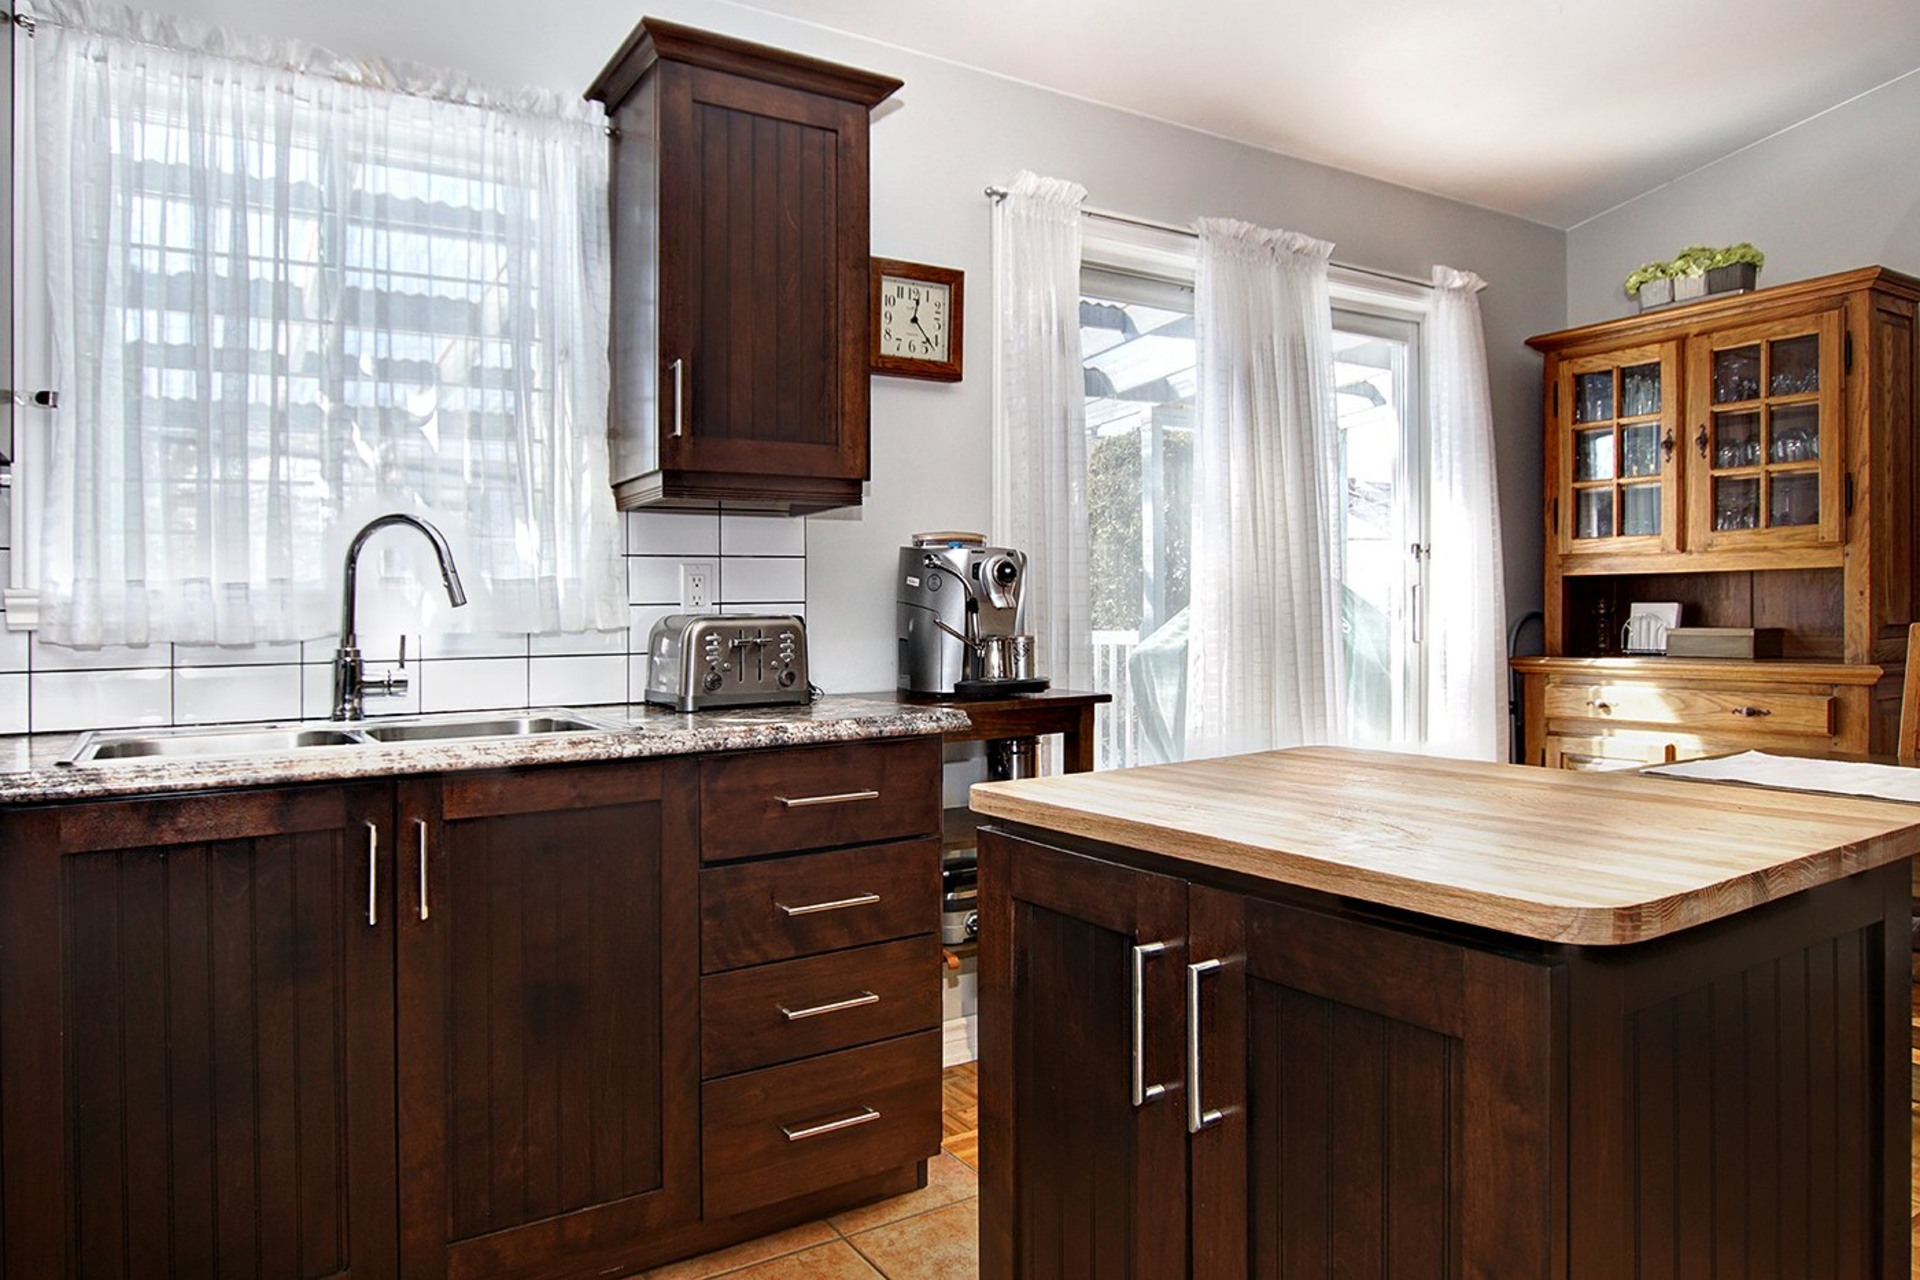 image 9 - House For sale Repentigny Repentigny  - 10 rooms